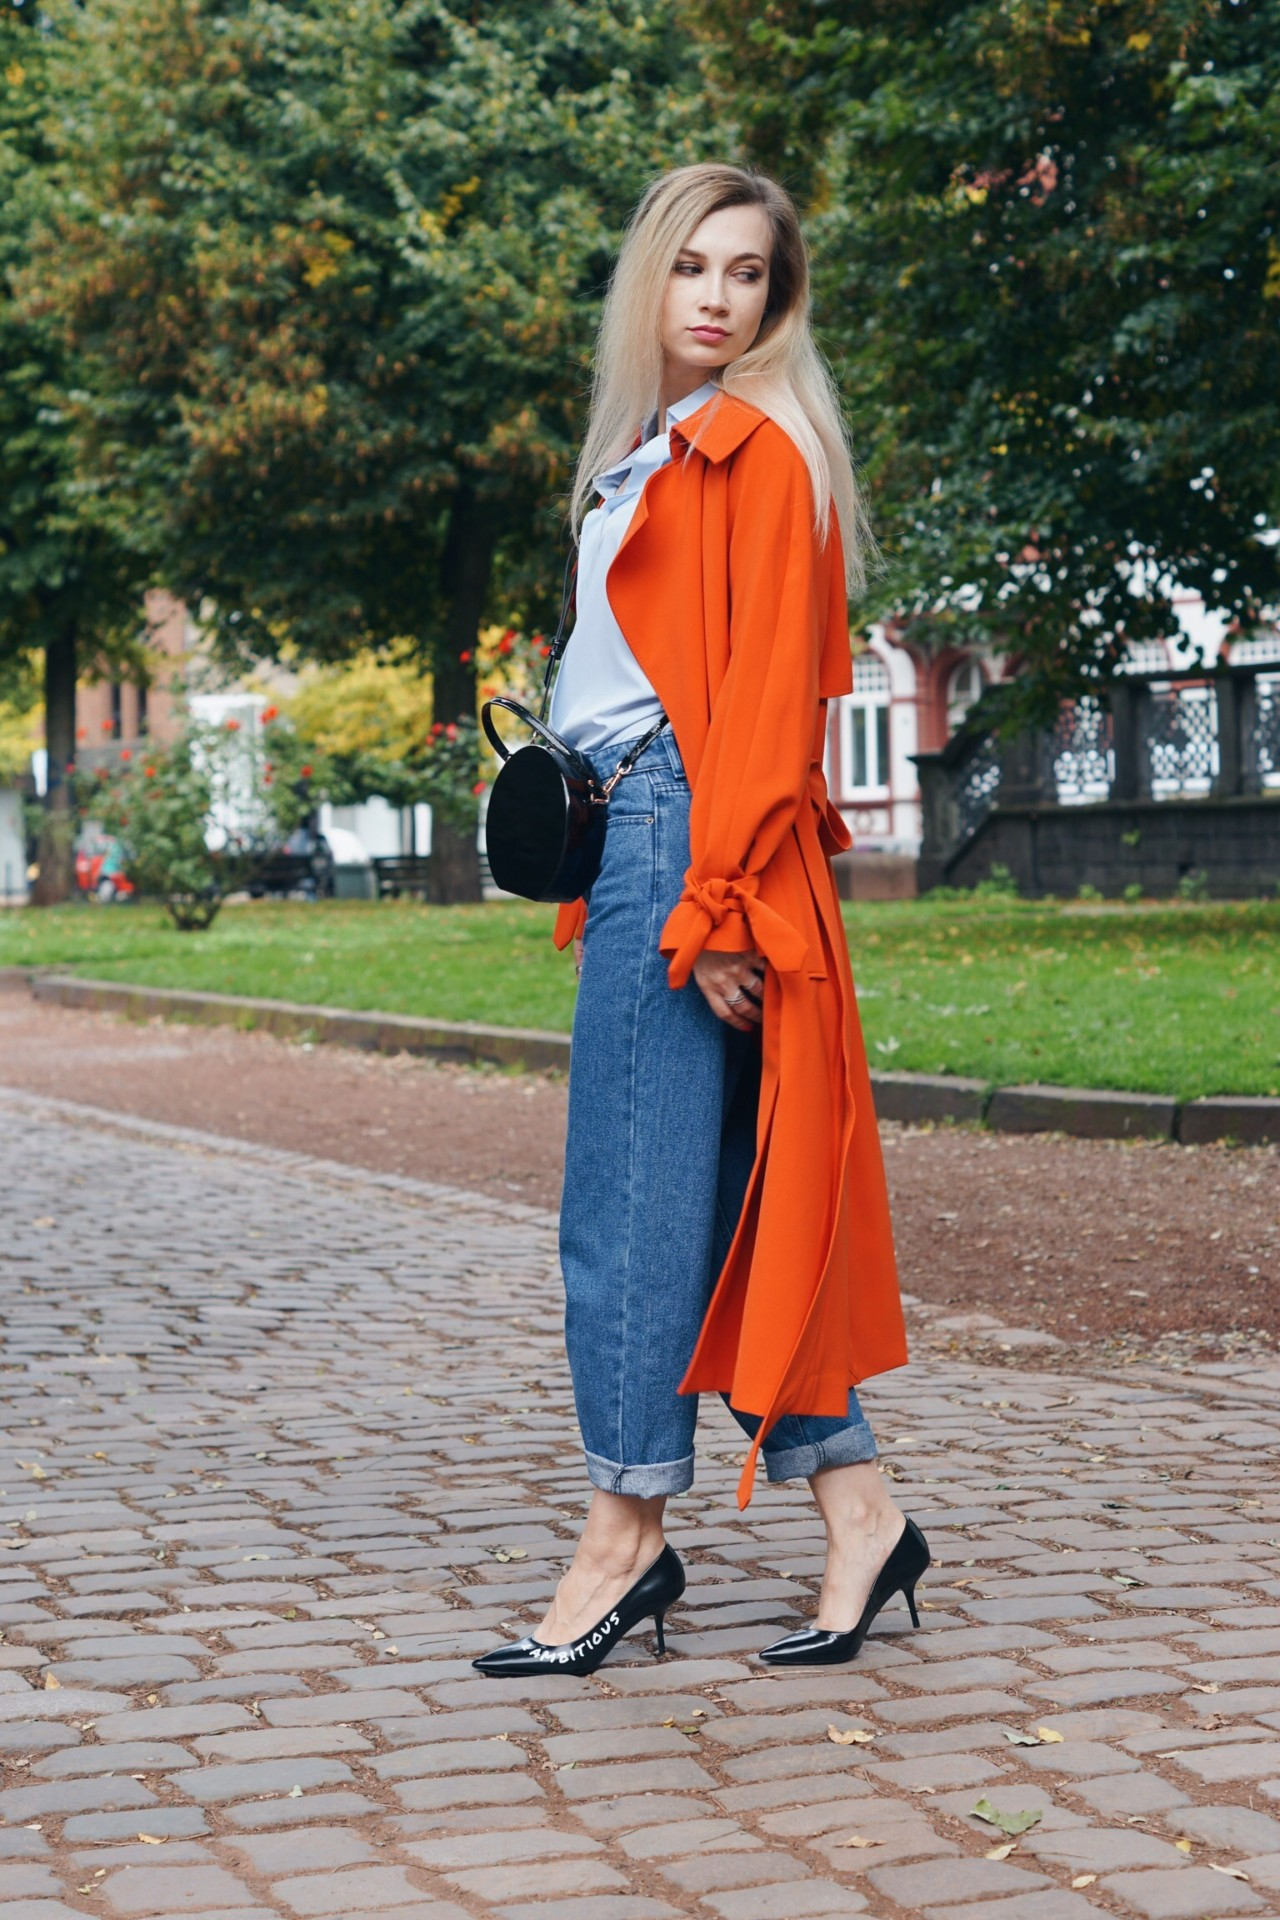 dbkstylez_bestblog_fashion_trends_orange_coat_stil_mode_mom_jeans_herbsttrends_мода_стиль